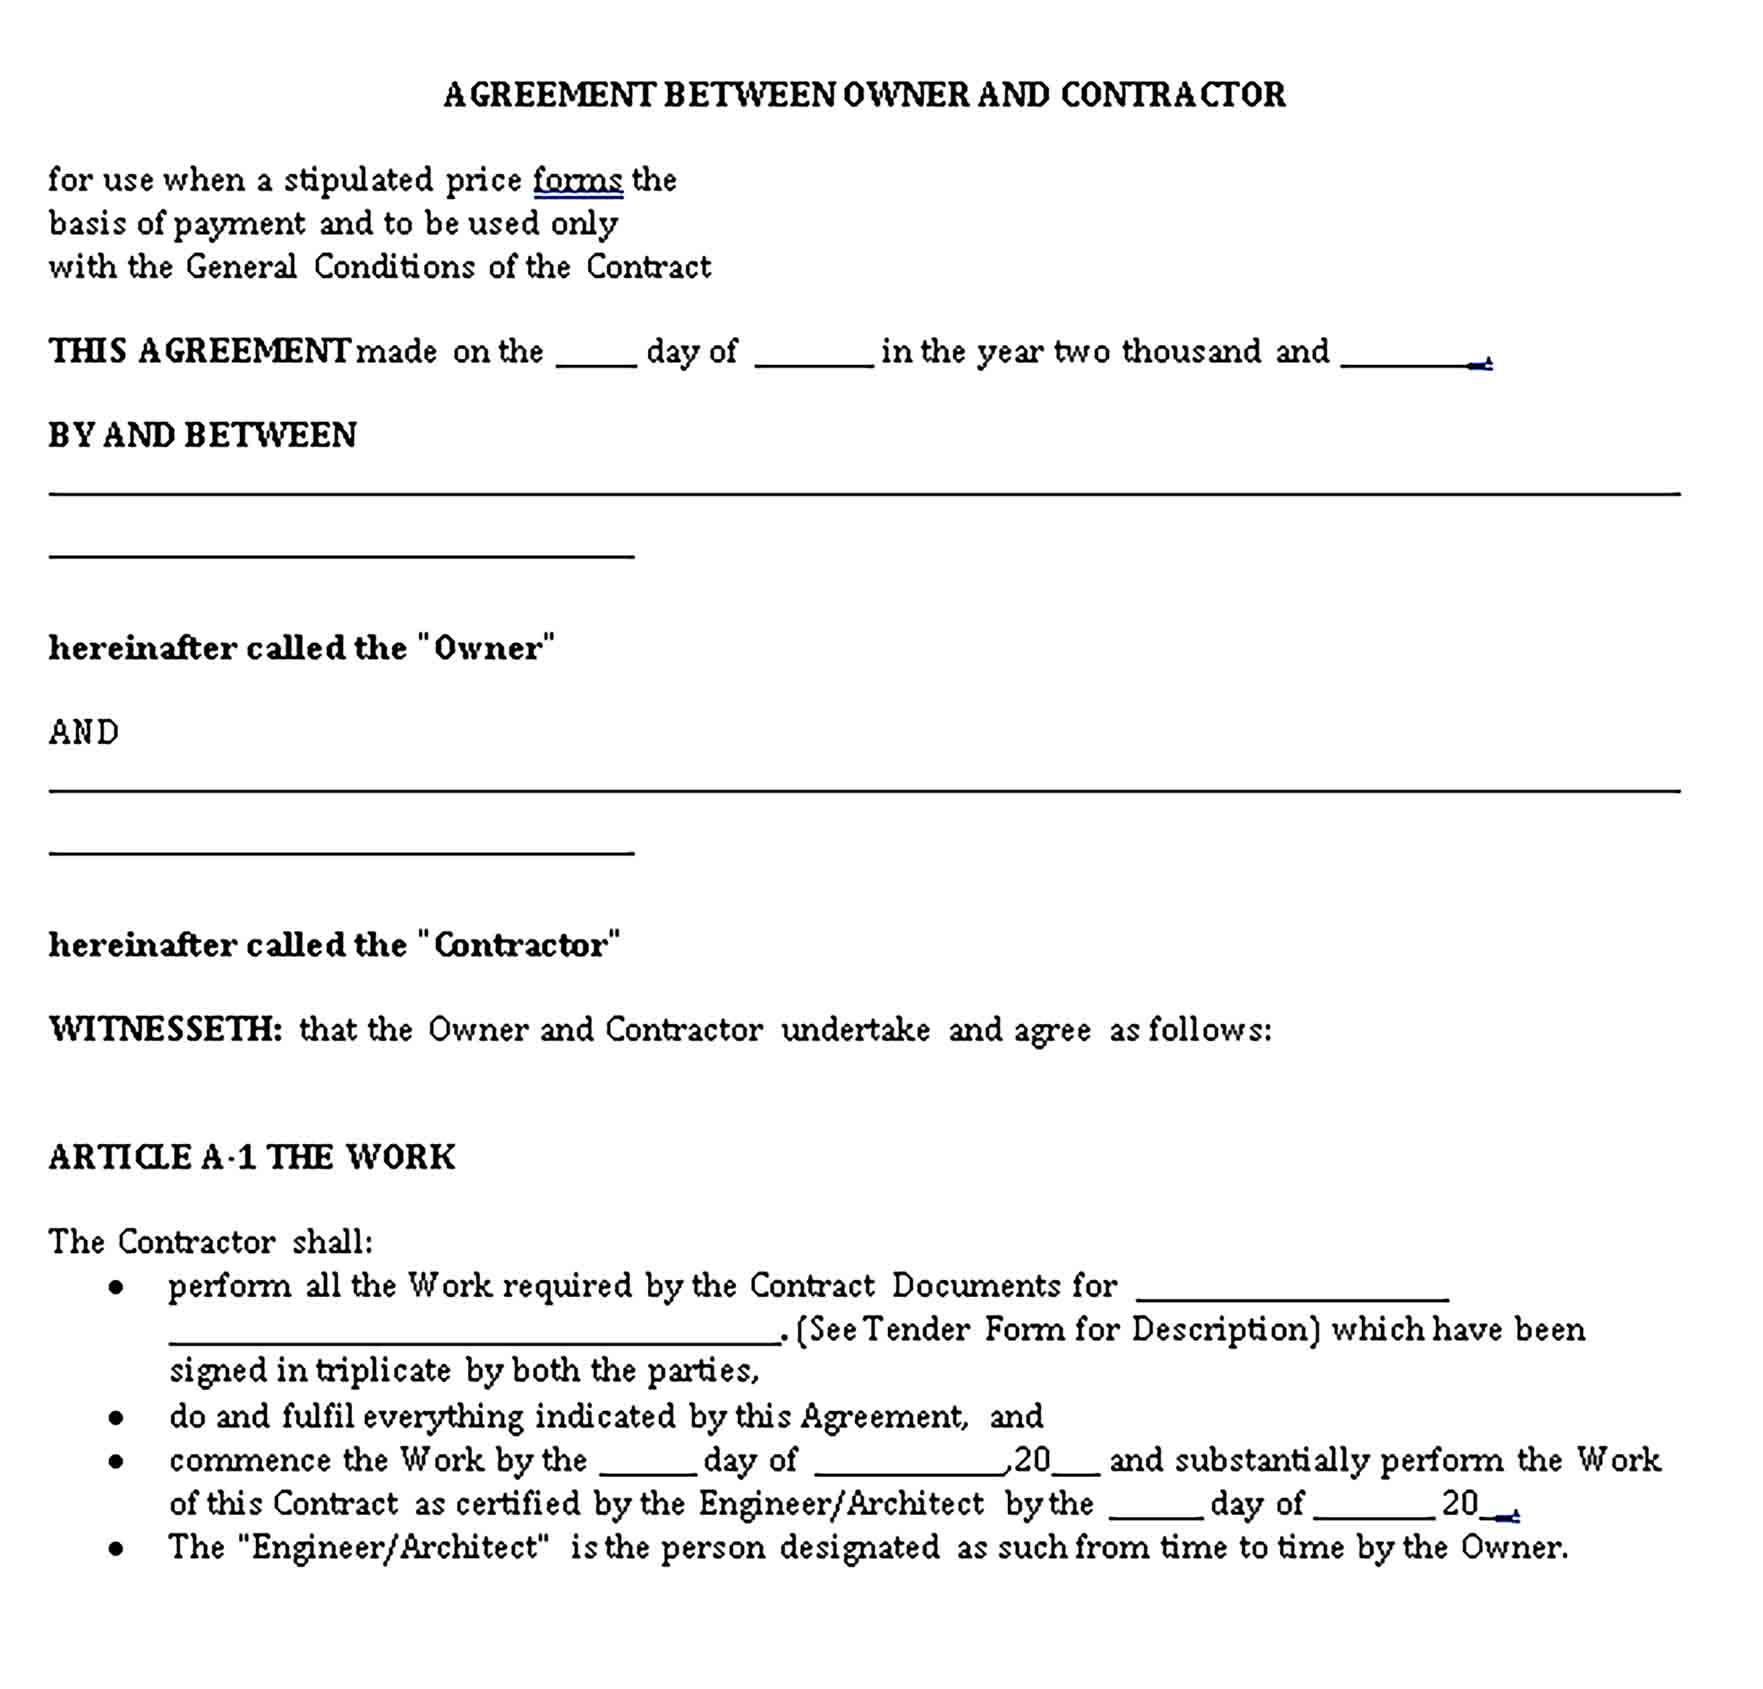 Templates Legal Agreement Between Contractor Owner Sample 1